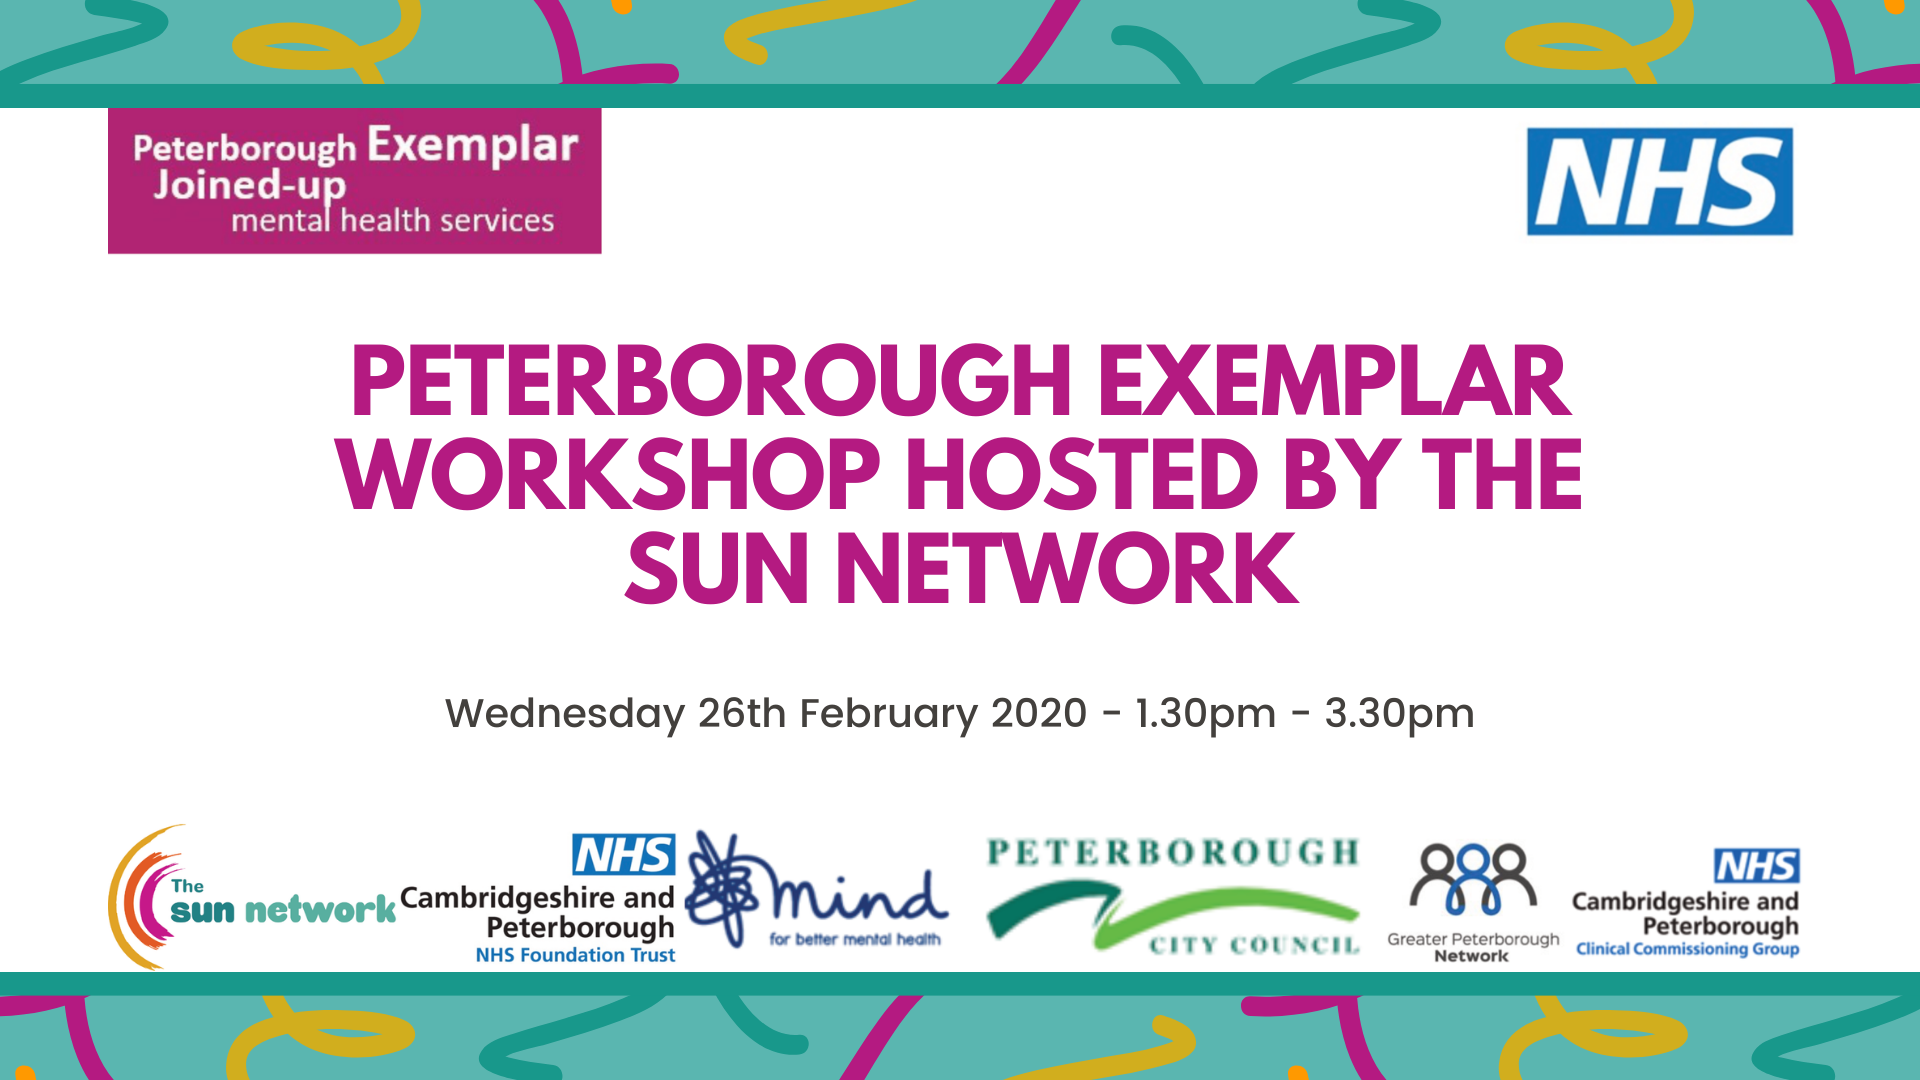 Peterborough Exemplar Workshop Hosted by the SUN Network